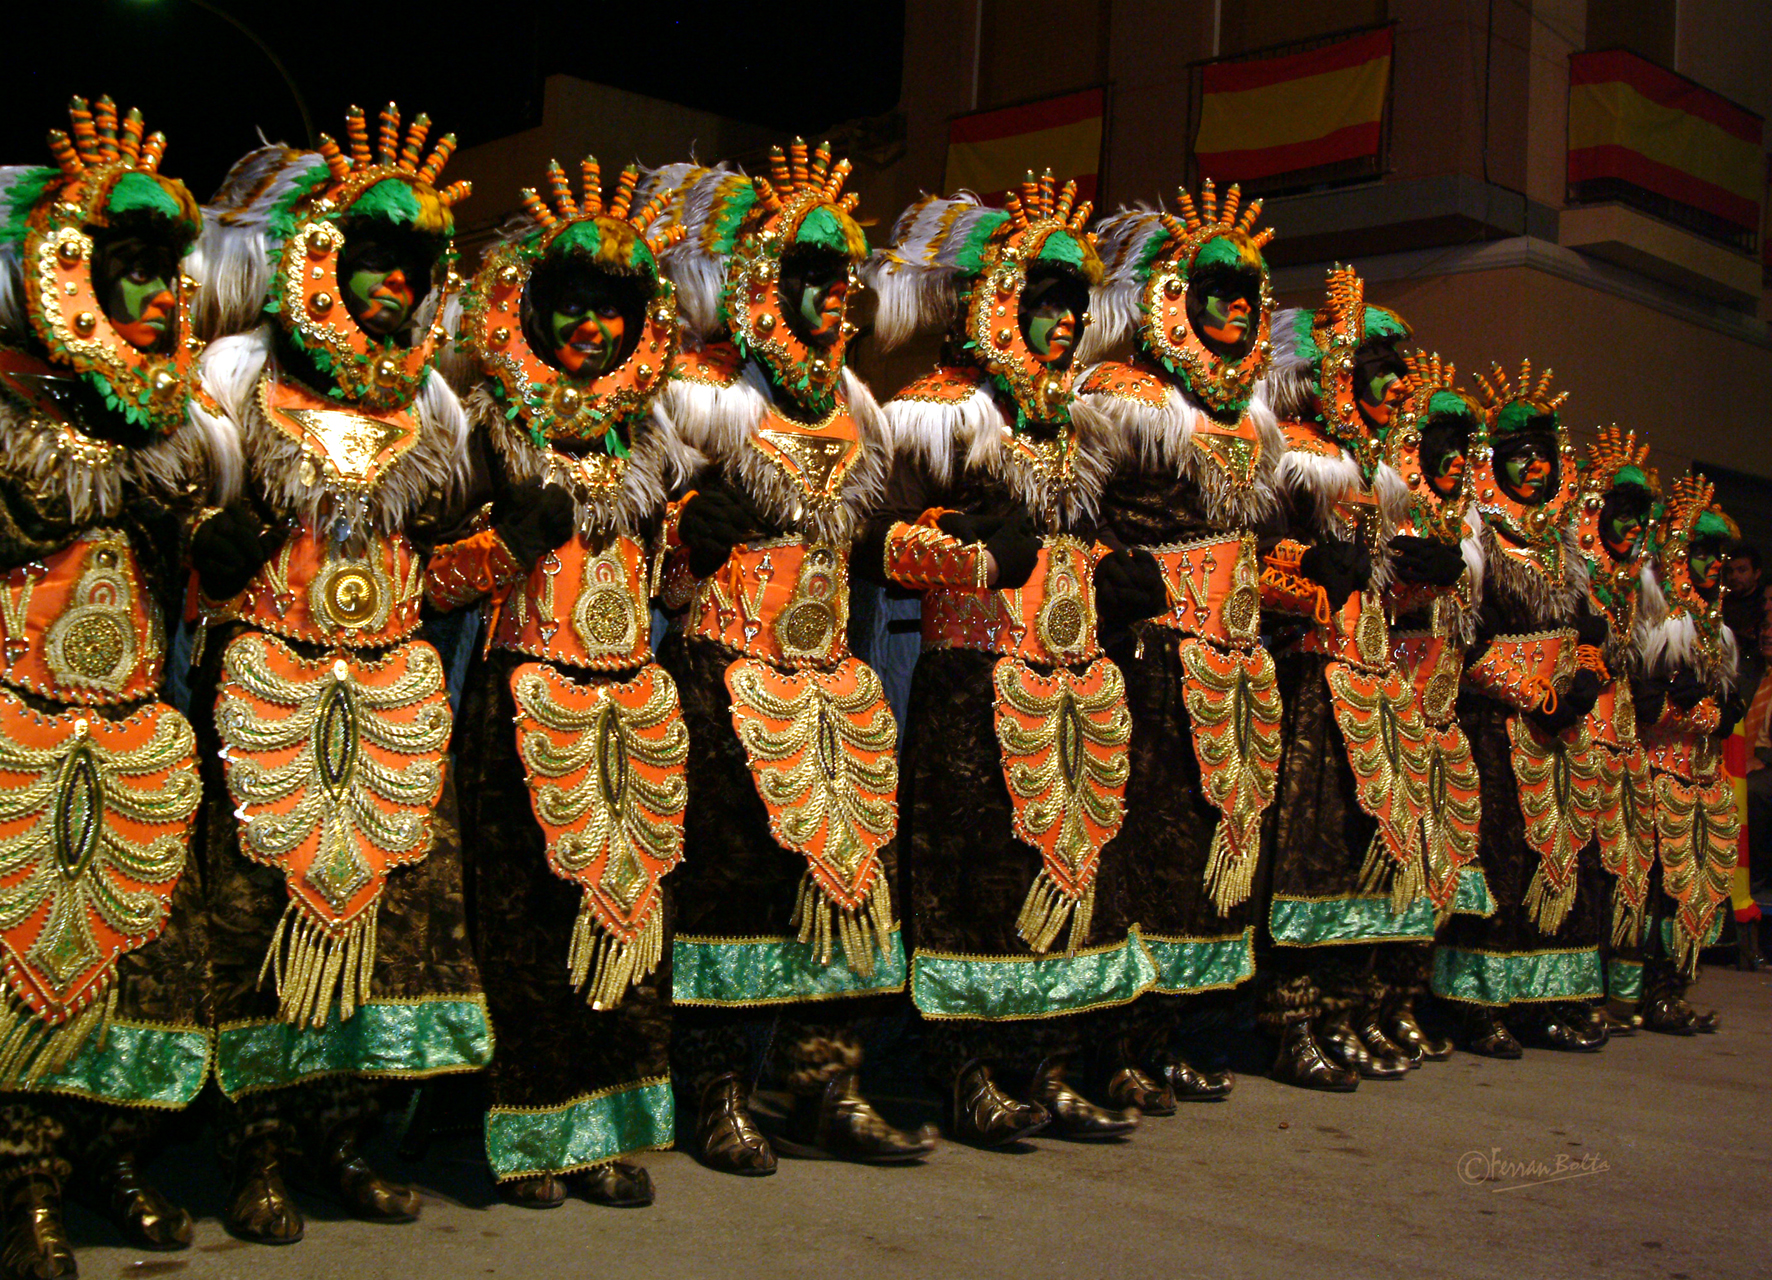 The Patron Saint Feast Days of the Moros y Cristianos de San Pedro Apóstol (Moors and Christians of Saint Peter the Apostle)